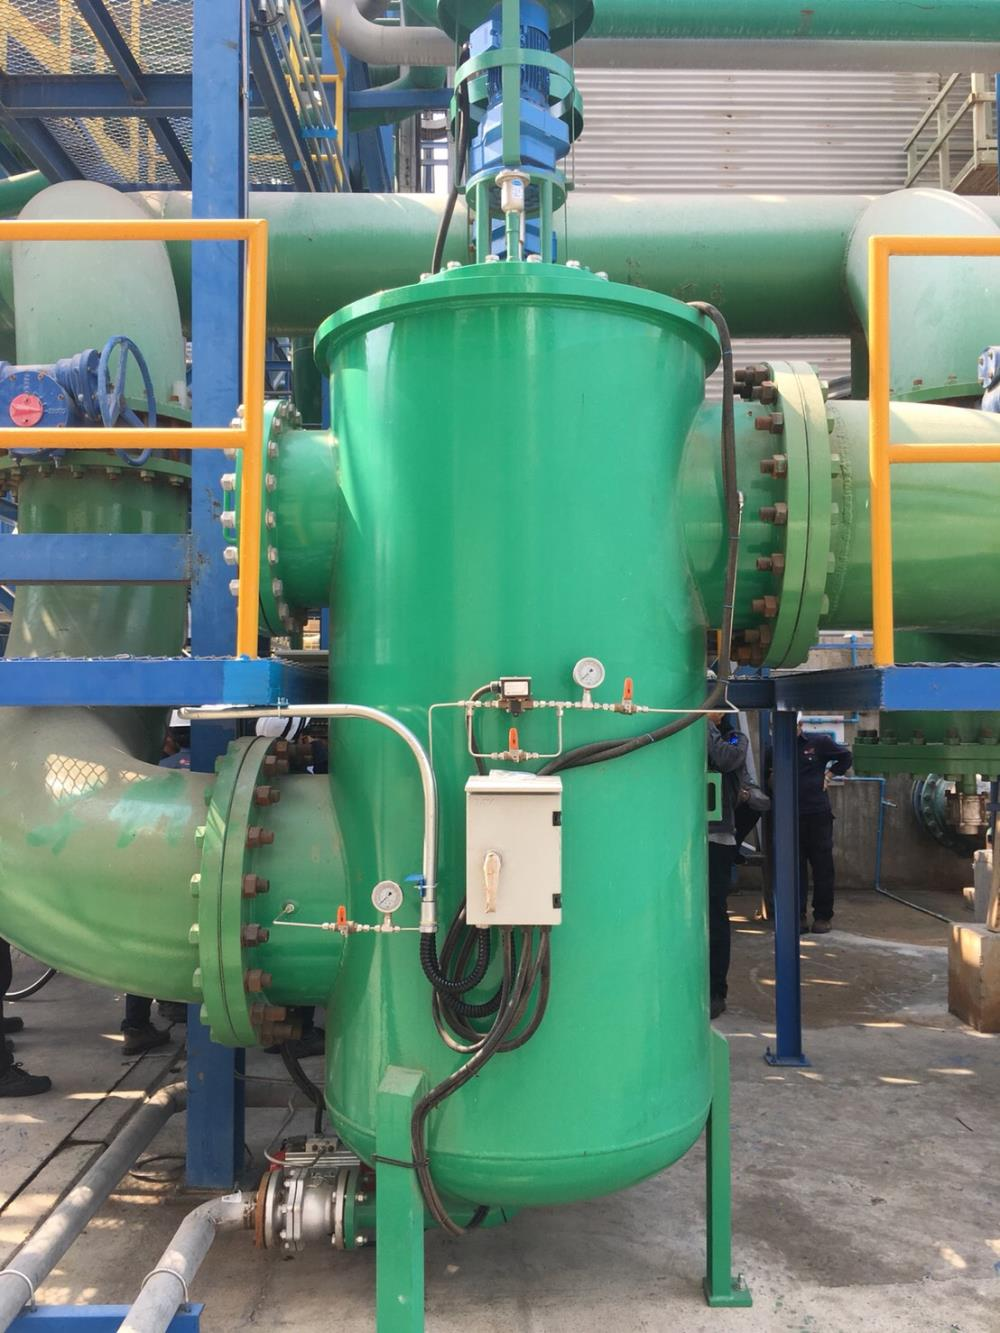 Automatic Self-Cleaning Strainers,automatic self-cleaning strainer, Auto Backwas Filter, Auto Strainer Filter,IWAKO,Machinery and Process Equipment/Filters/Strainers